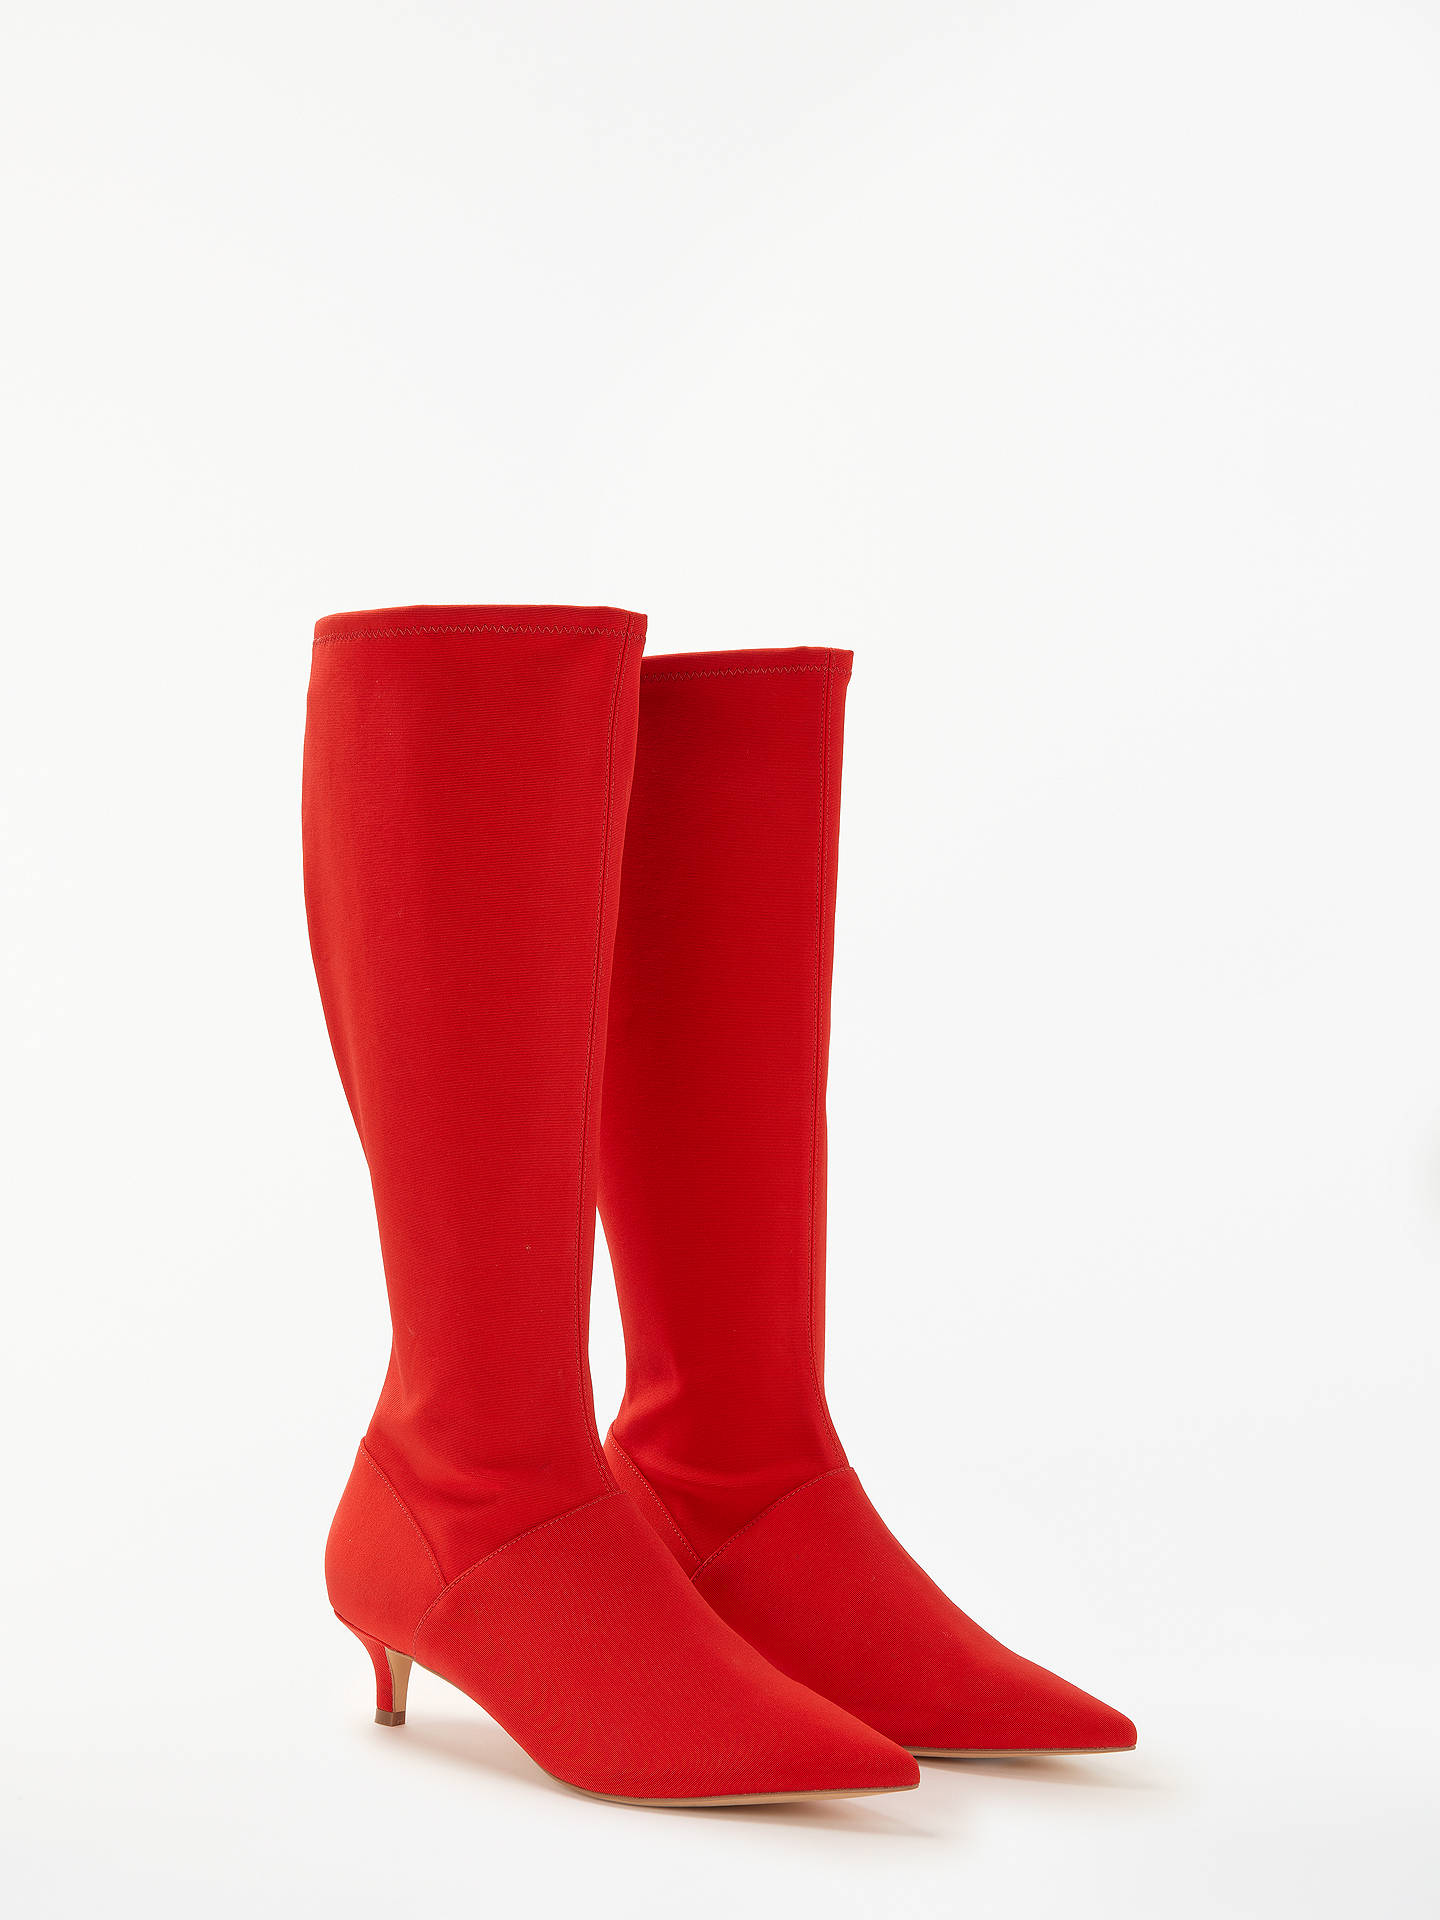 Buy Boden Kitten Heel Stretch Boots, Post Box Red, 4 Online at johnlewis.com